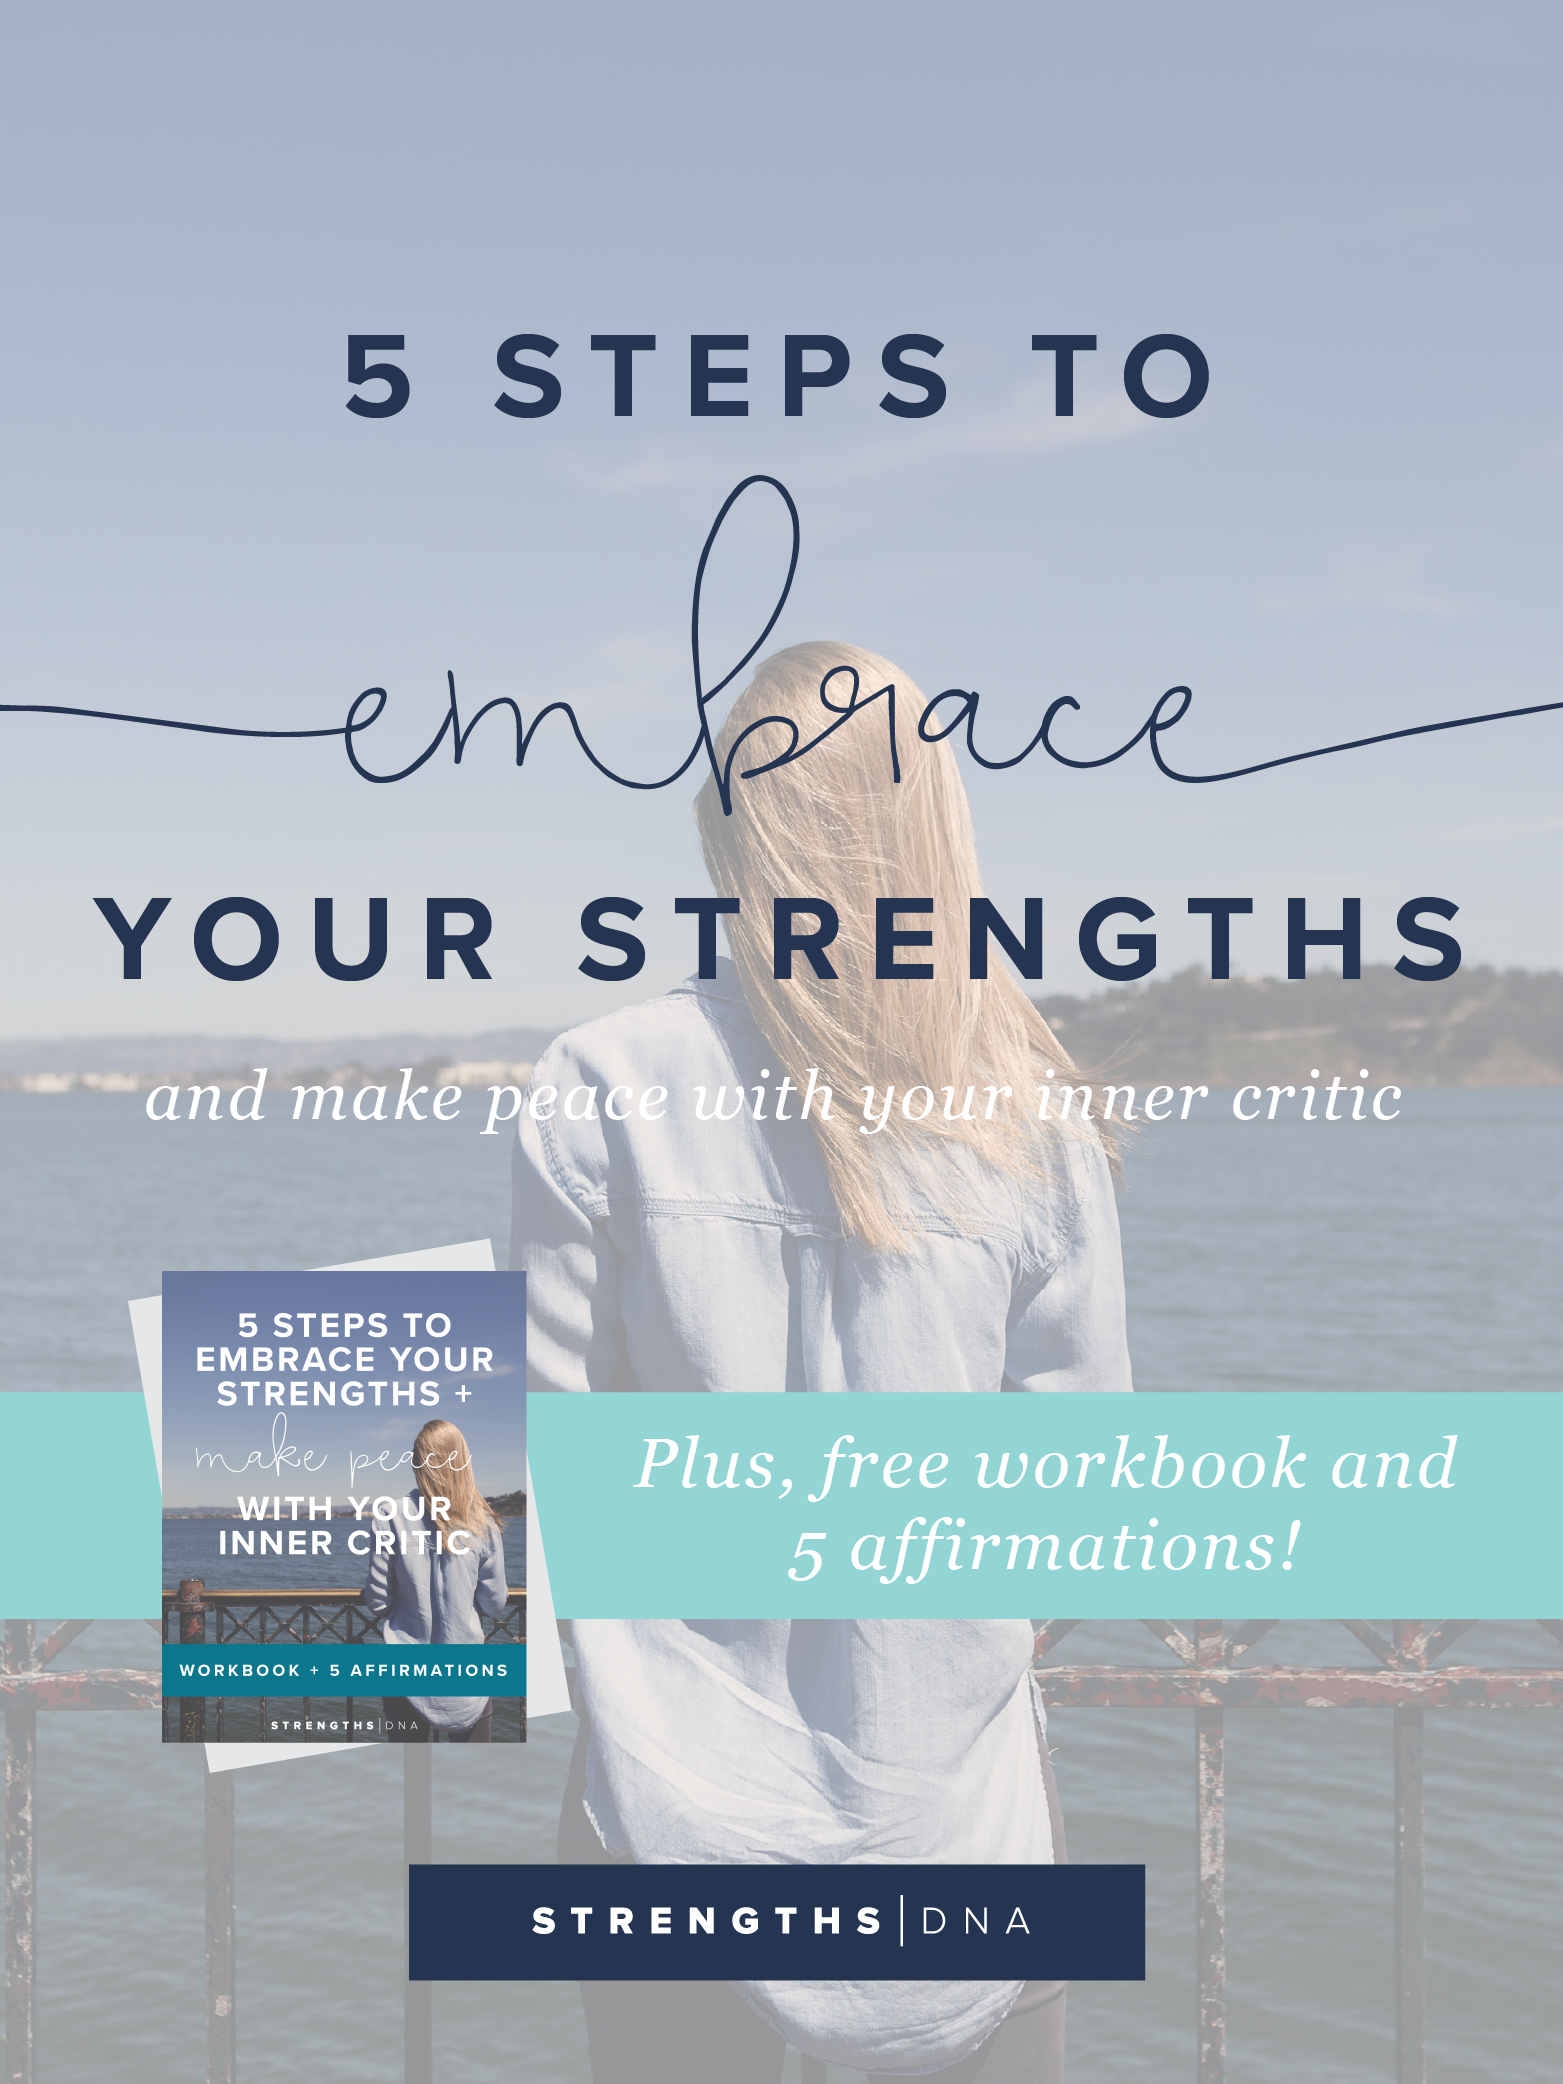 5 Steps to Embrace Your Strengths & Make Peace with Your Inner Critic